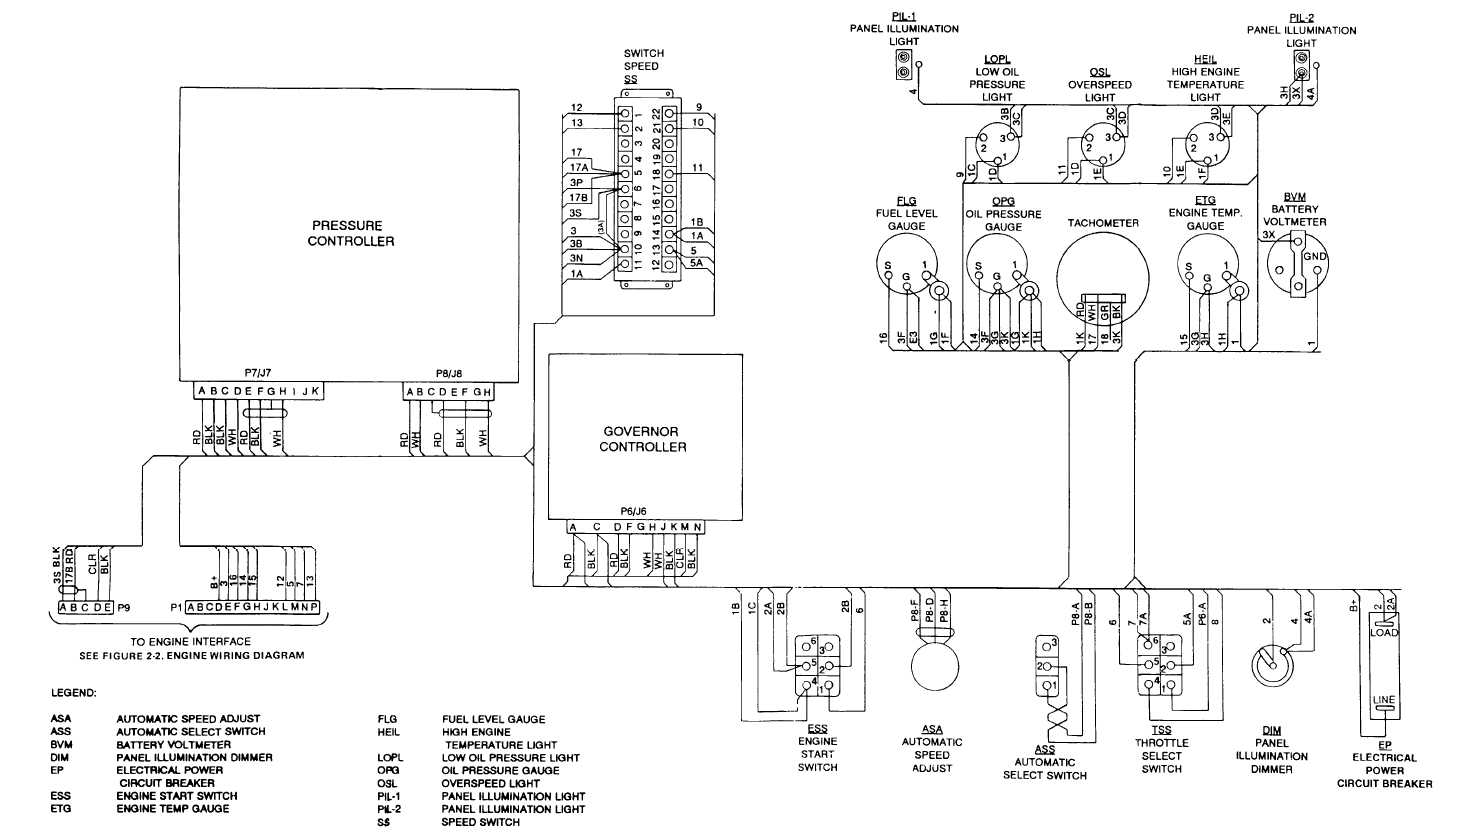 27421bb quickcar switch panel wiring diagram | wiring resources  wiring resources